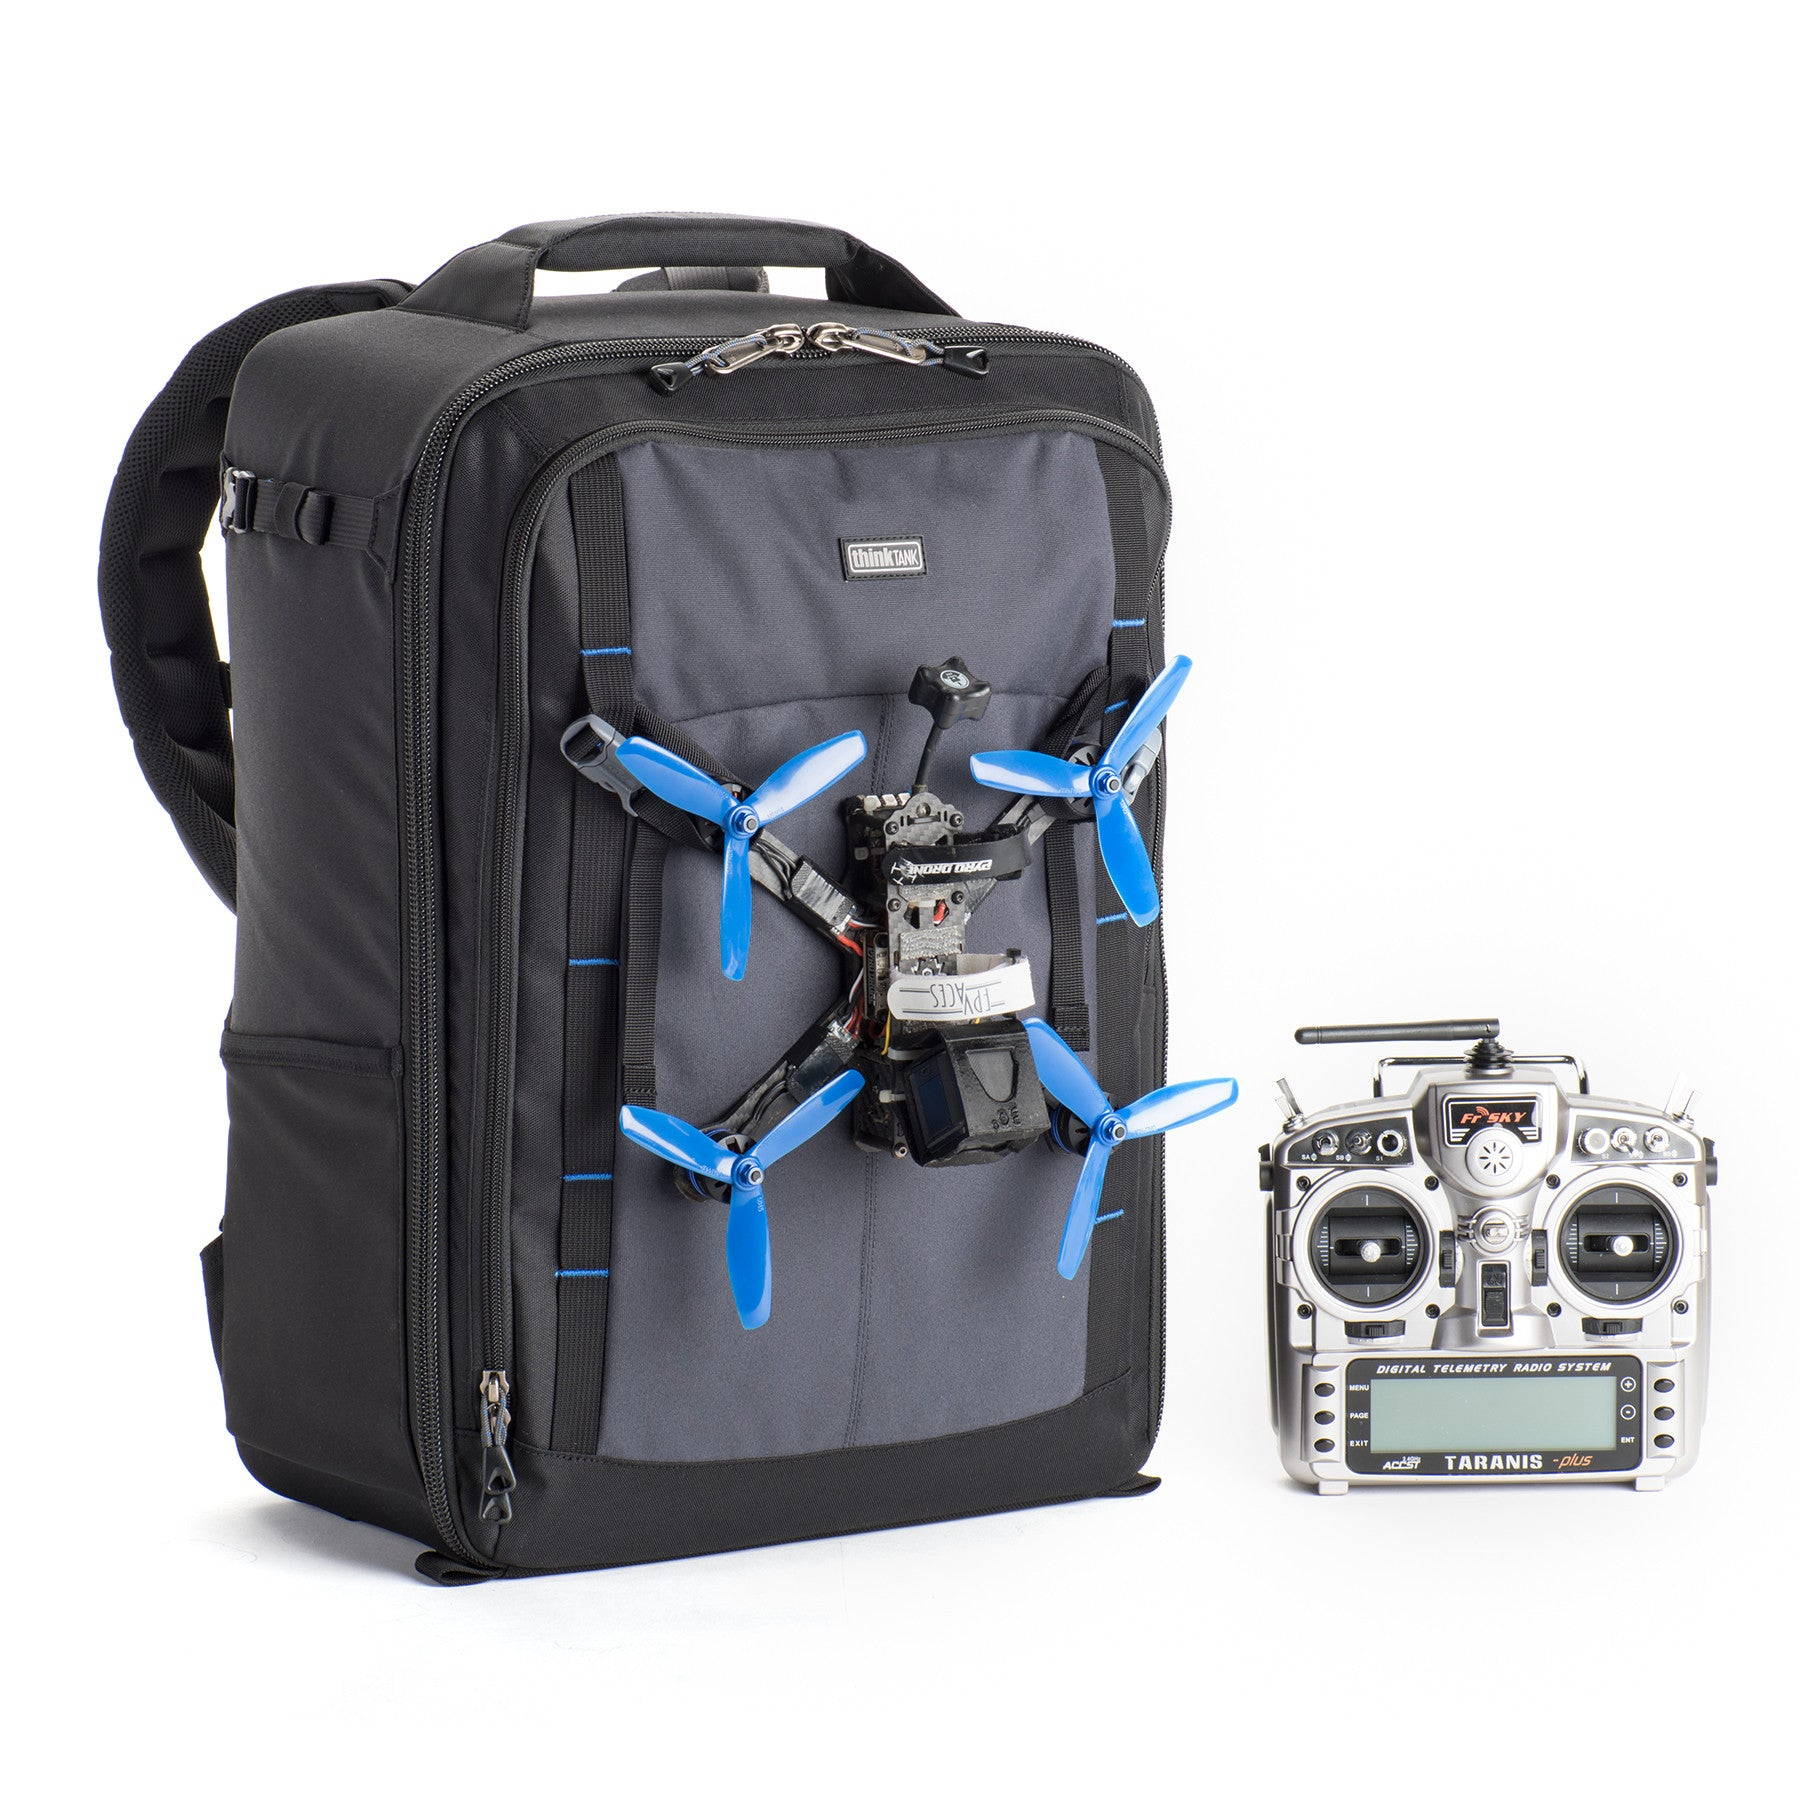 Fpv Airport Helipak Backpack Is Built To Transport Your